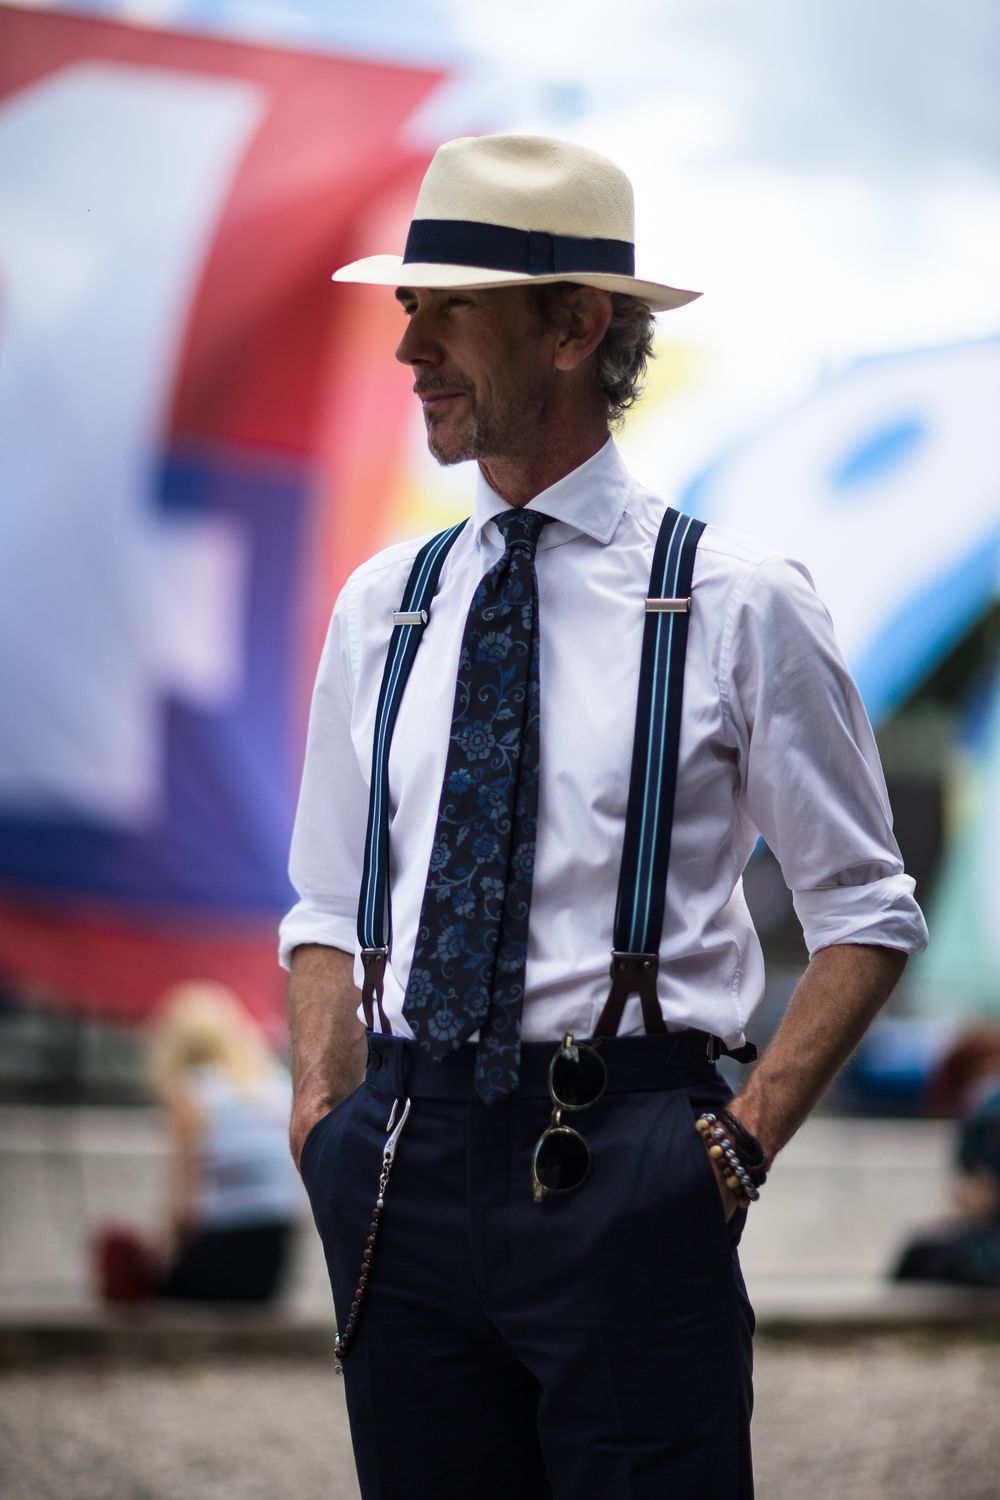 A round up of Pitti Uomo Street Style shot by Marcin T. Jozefiak